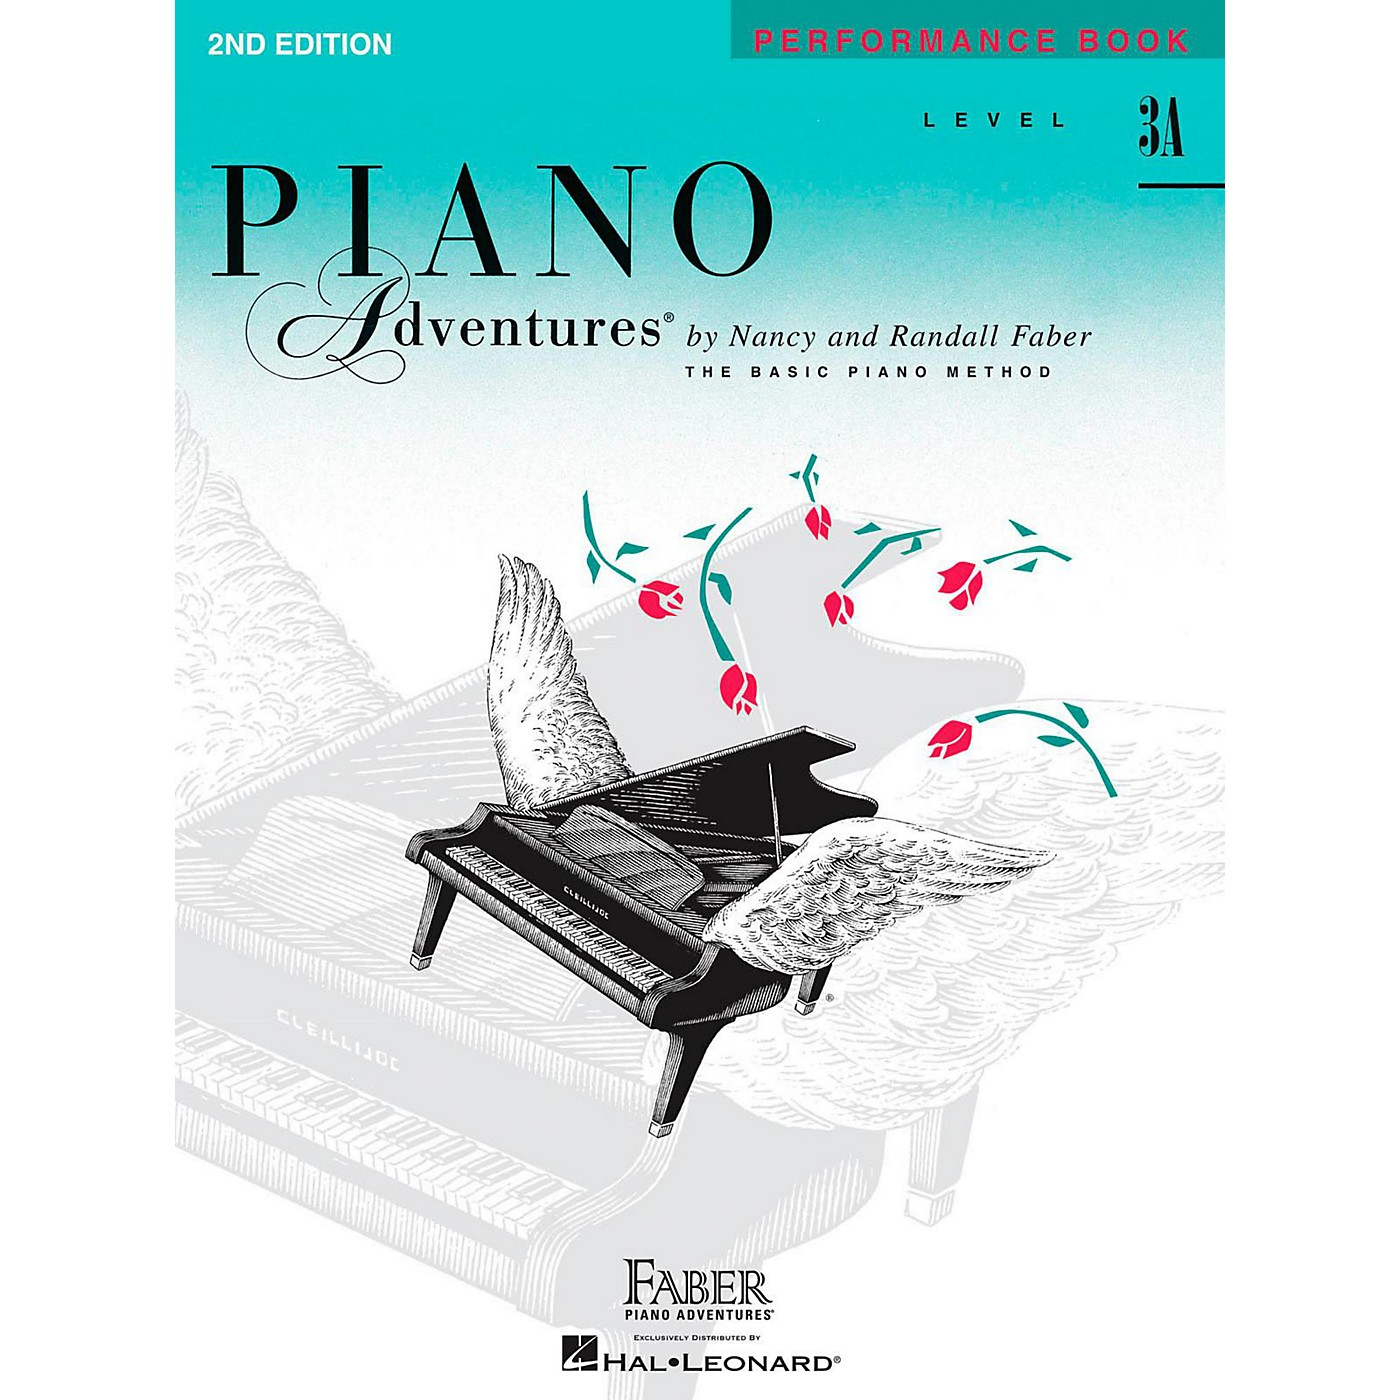 Faber Piano Adventures Piano Adventures Performance Book Level 3A thumbnail